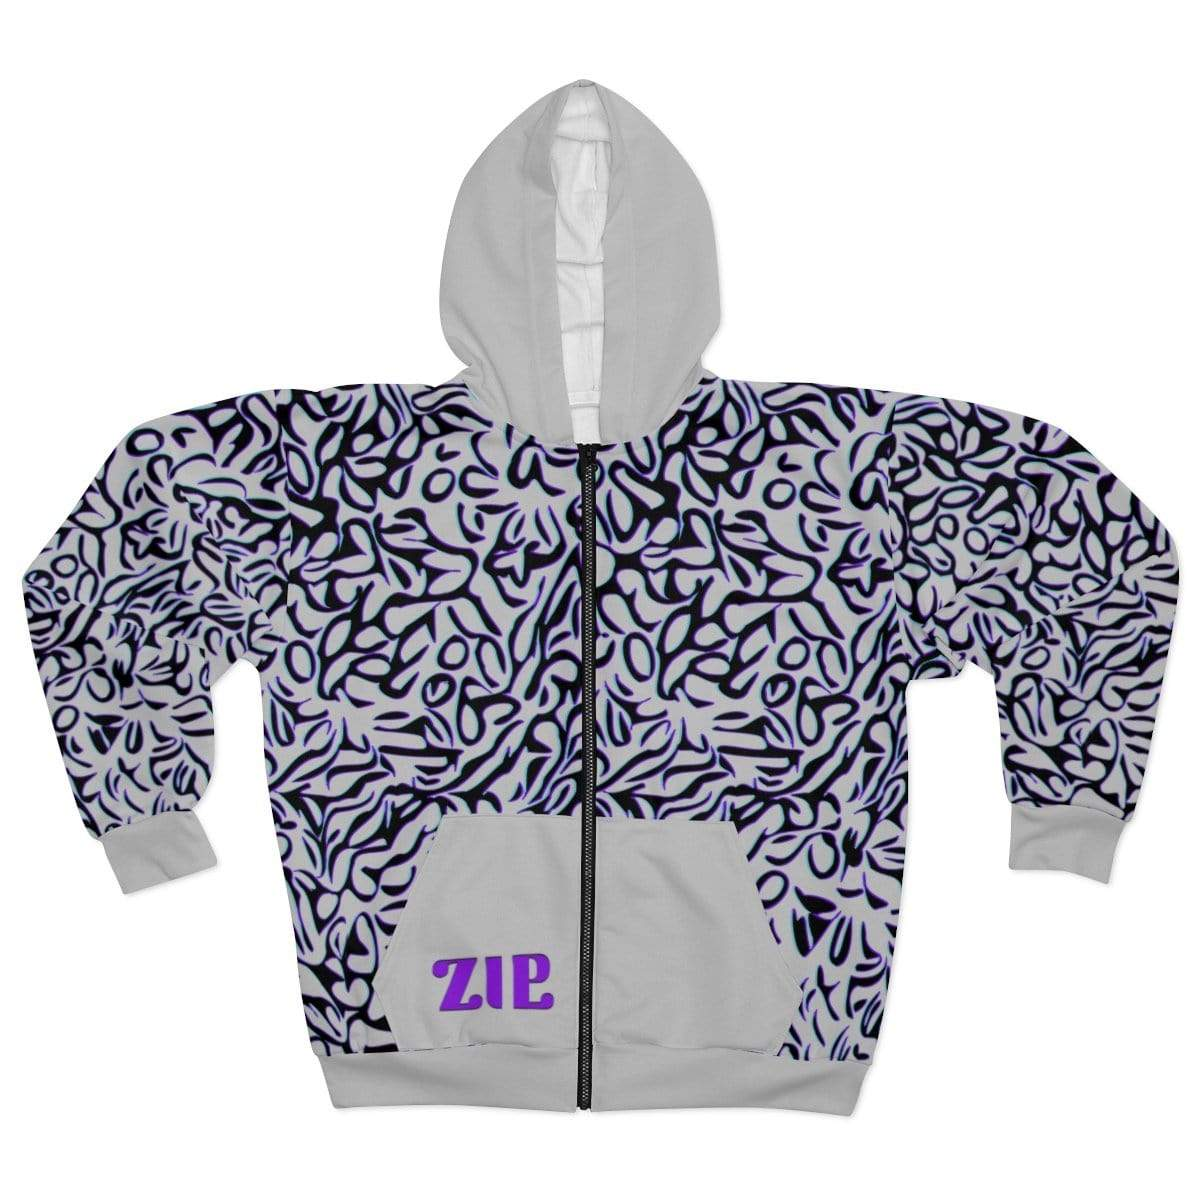 Printify All Over Prints L Plumskum Cut Sew AOP Zip Hoodie - Glitch Aesthetic 303